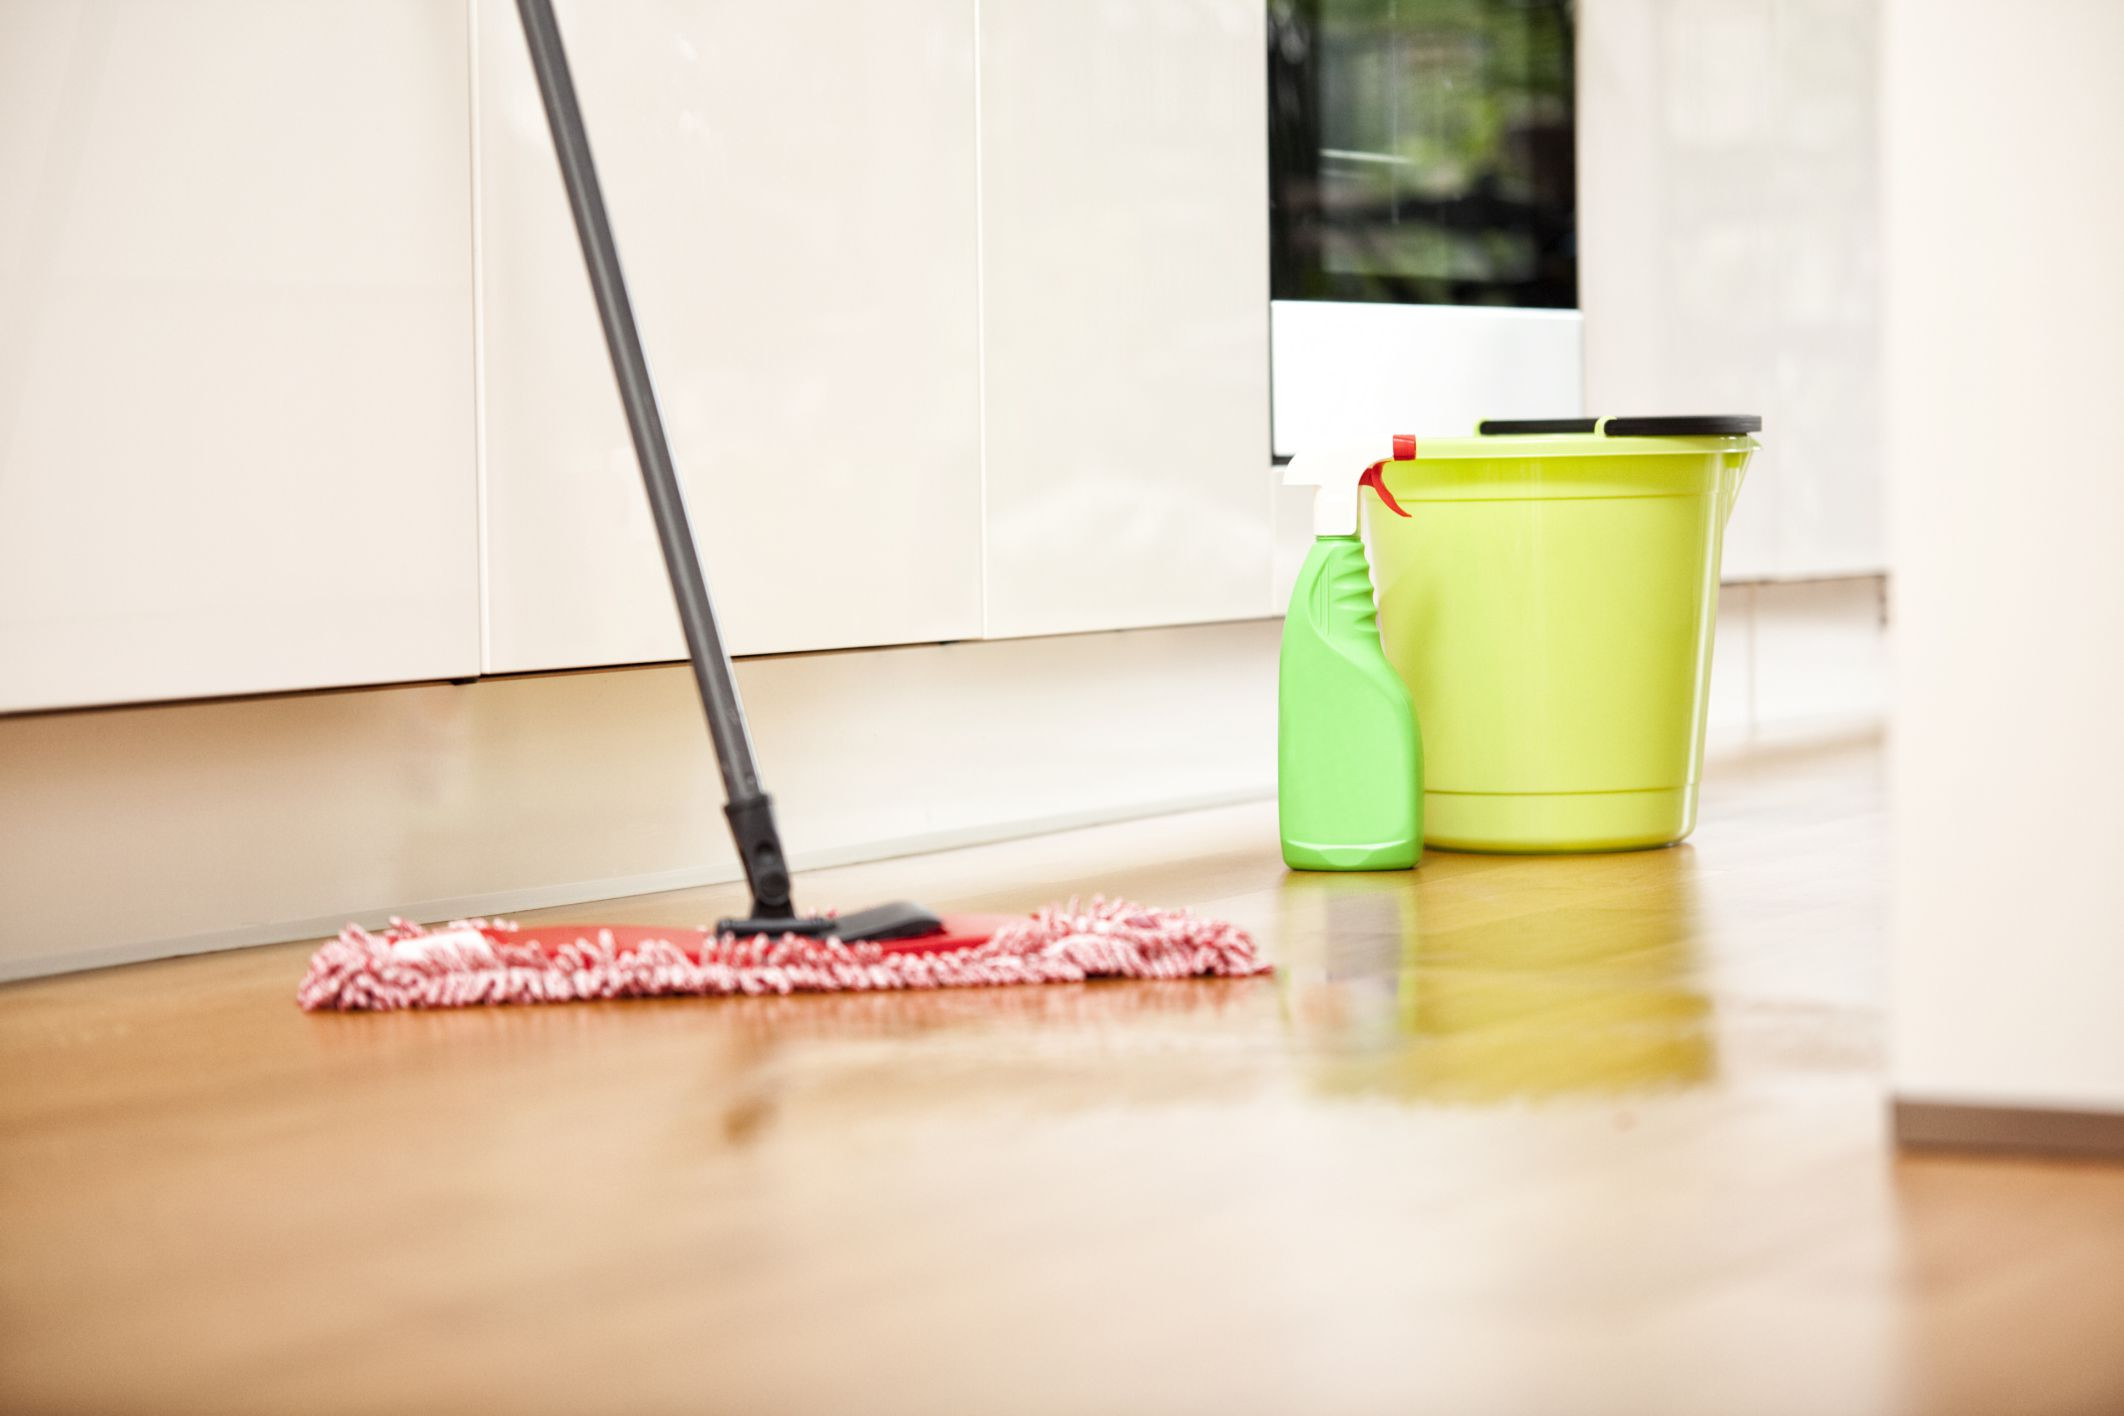 hardwood floor cleaning brush of 17 cleaning uses for dish soap around the home regarding floor mopping mop and cleaning products